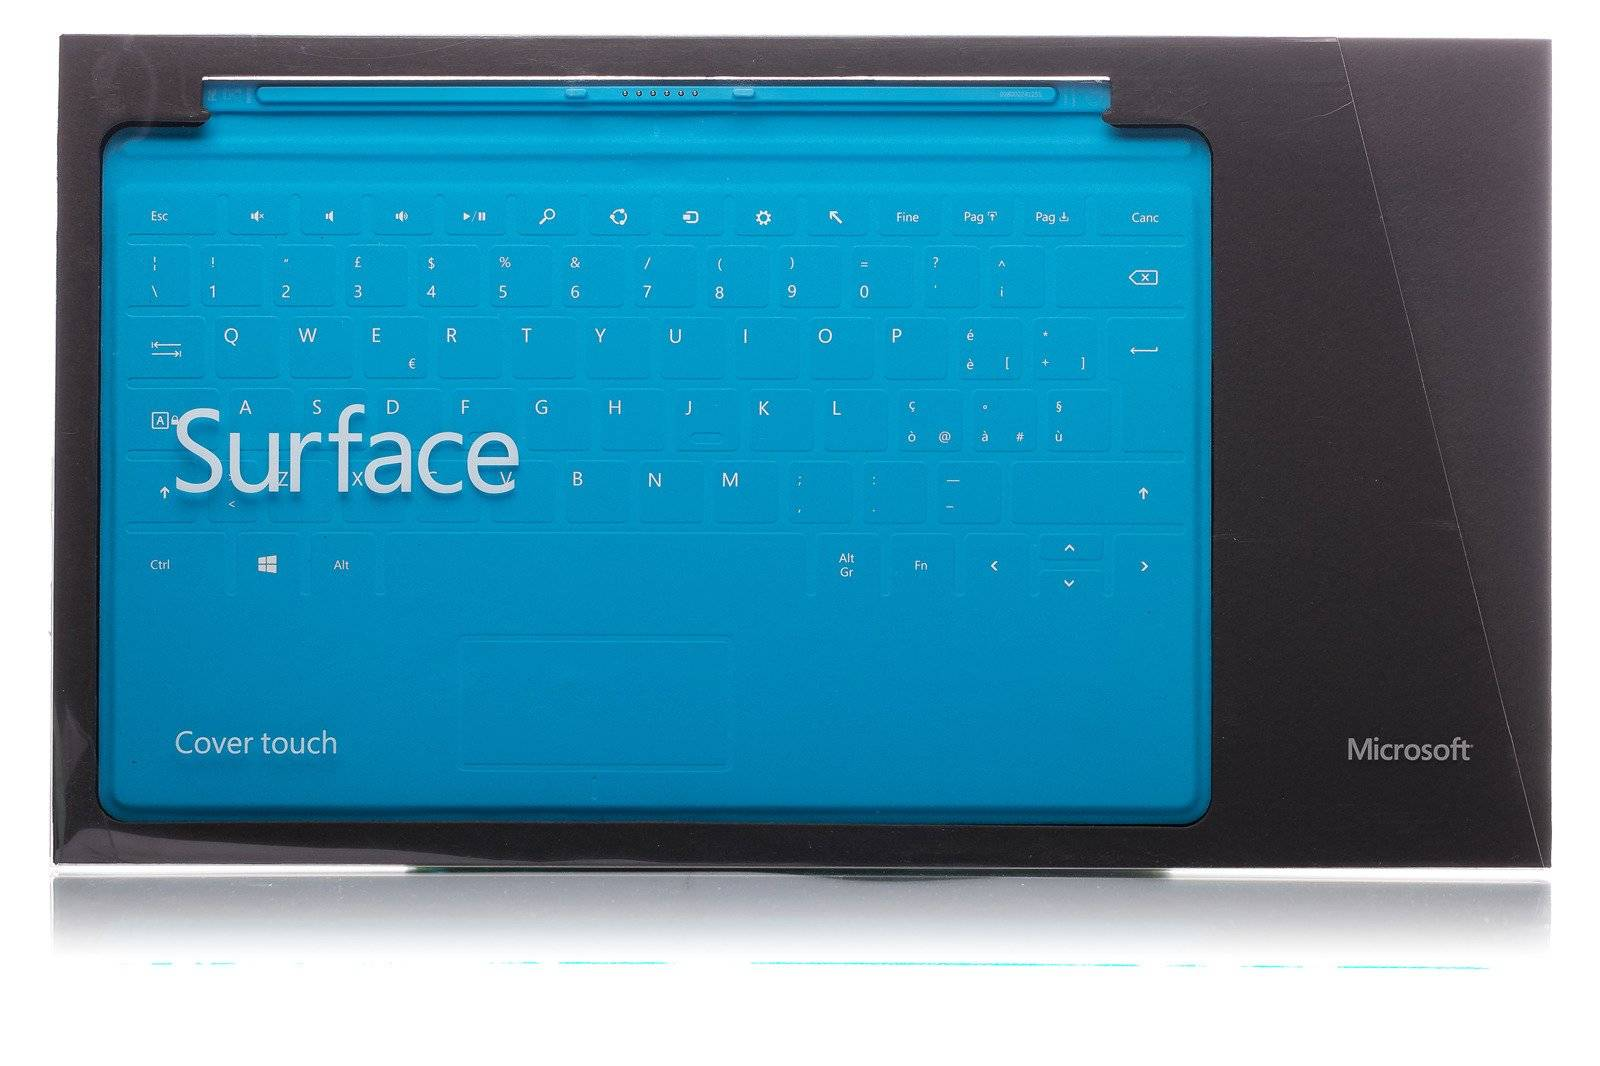 Keyboard Microsoft Surface Touch Cover 1 Cyan QWERTY (Italienisch)